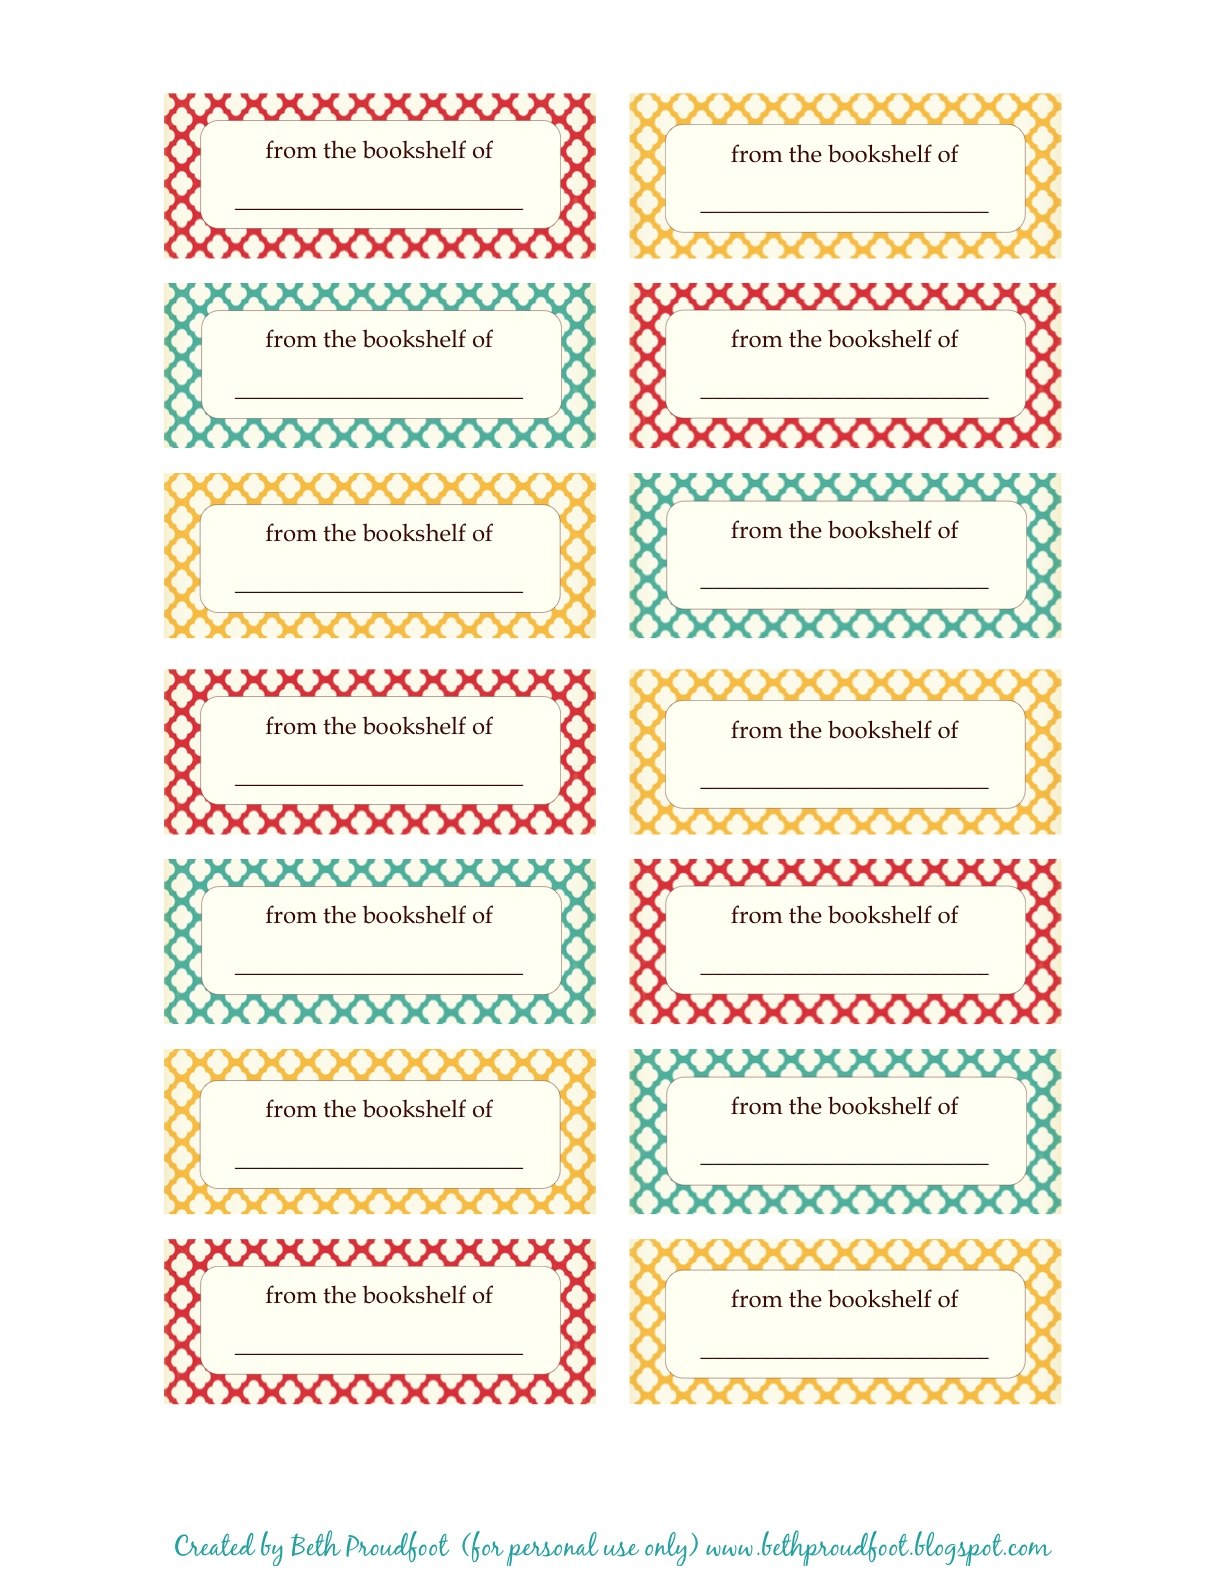 6 Images of Label Templates Free Printable Books